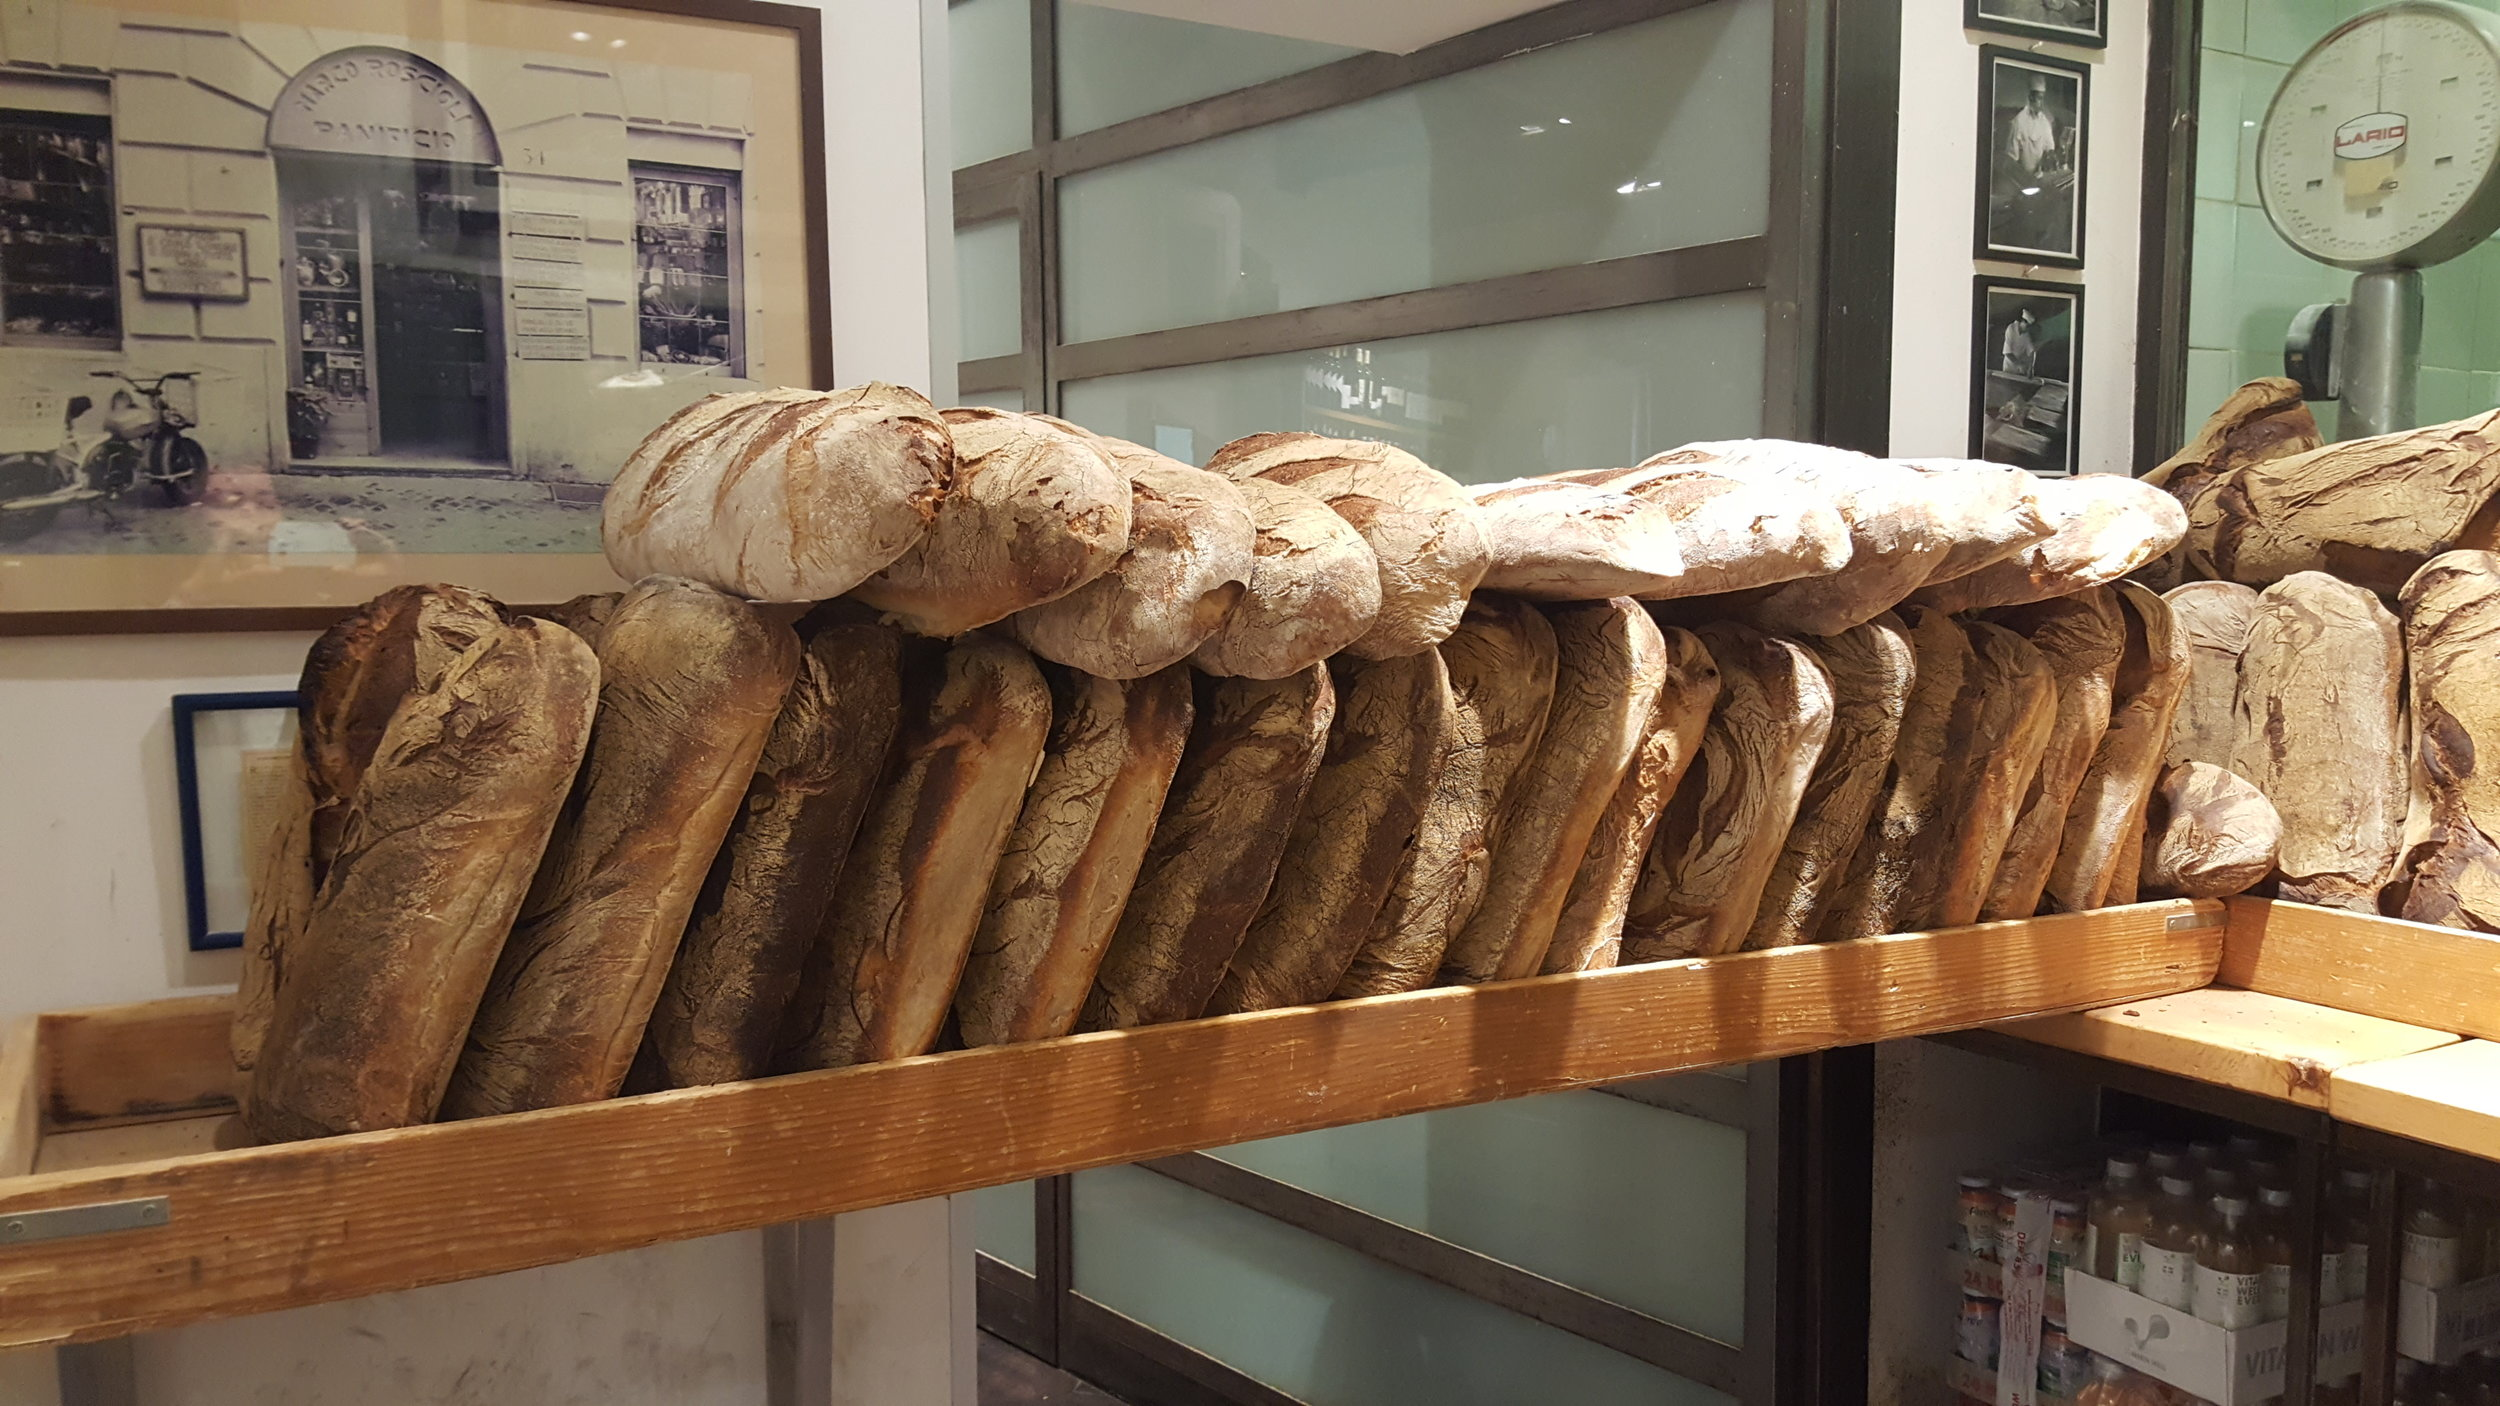 Bread on bread at Roscioli!